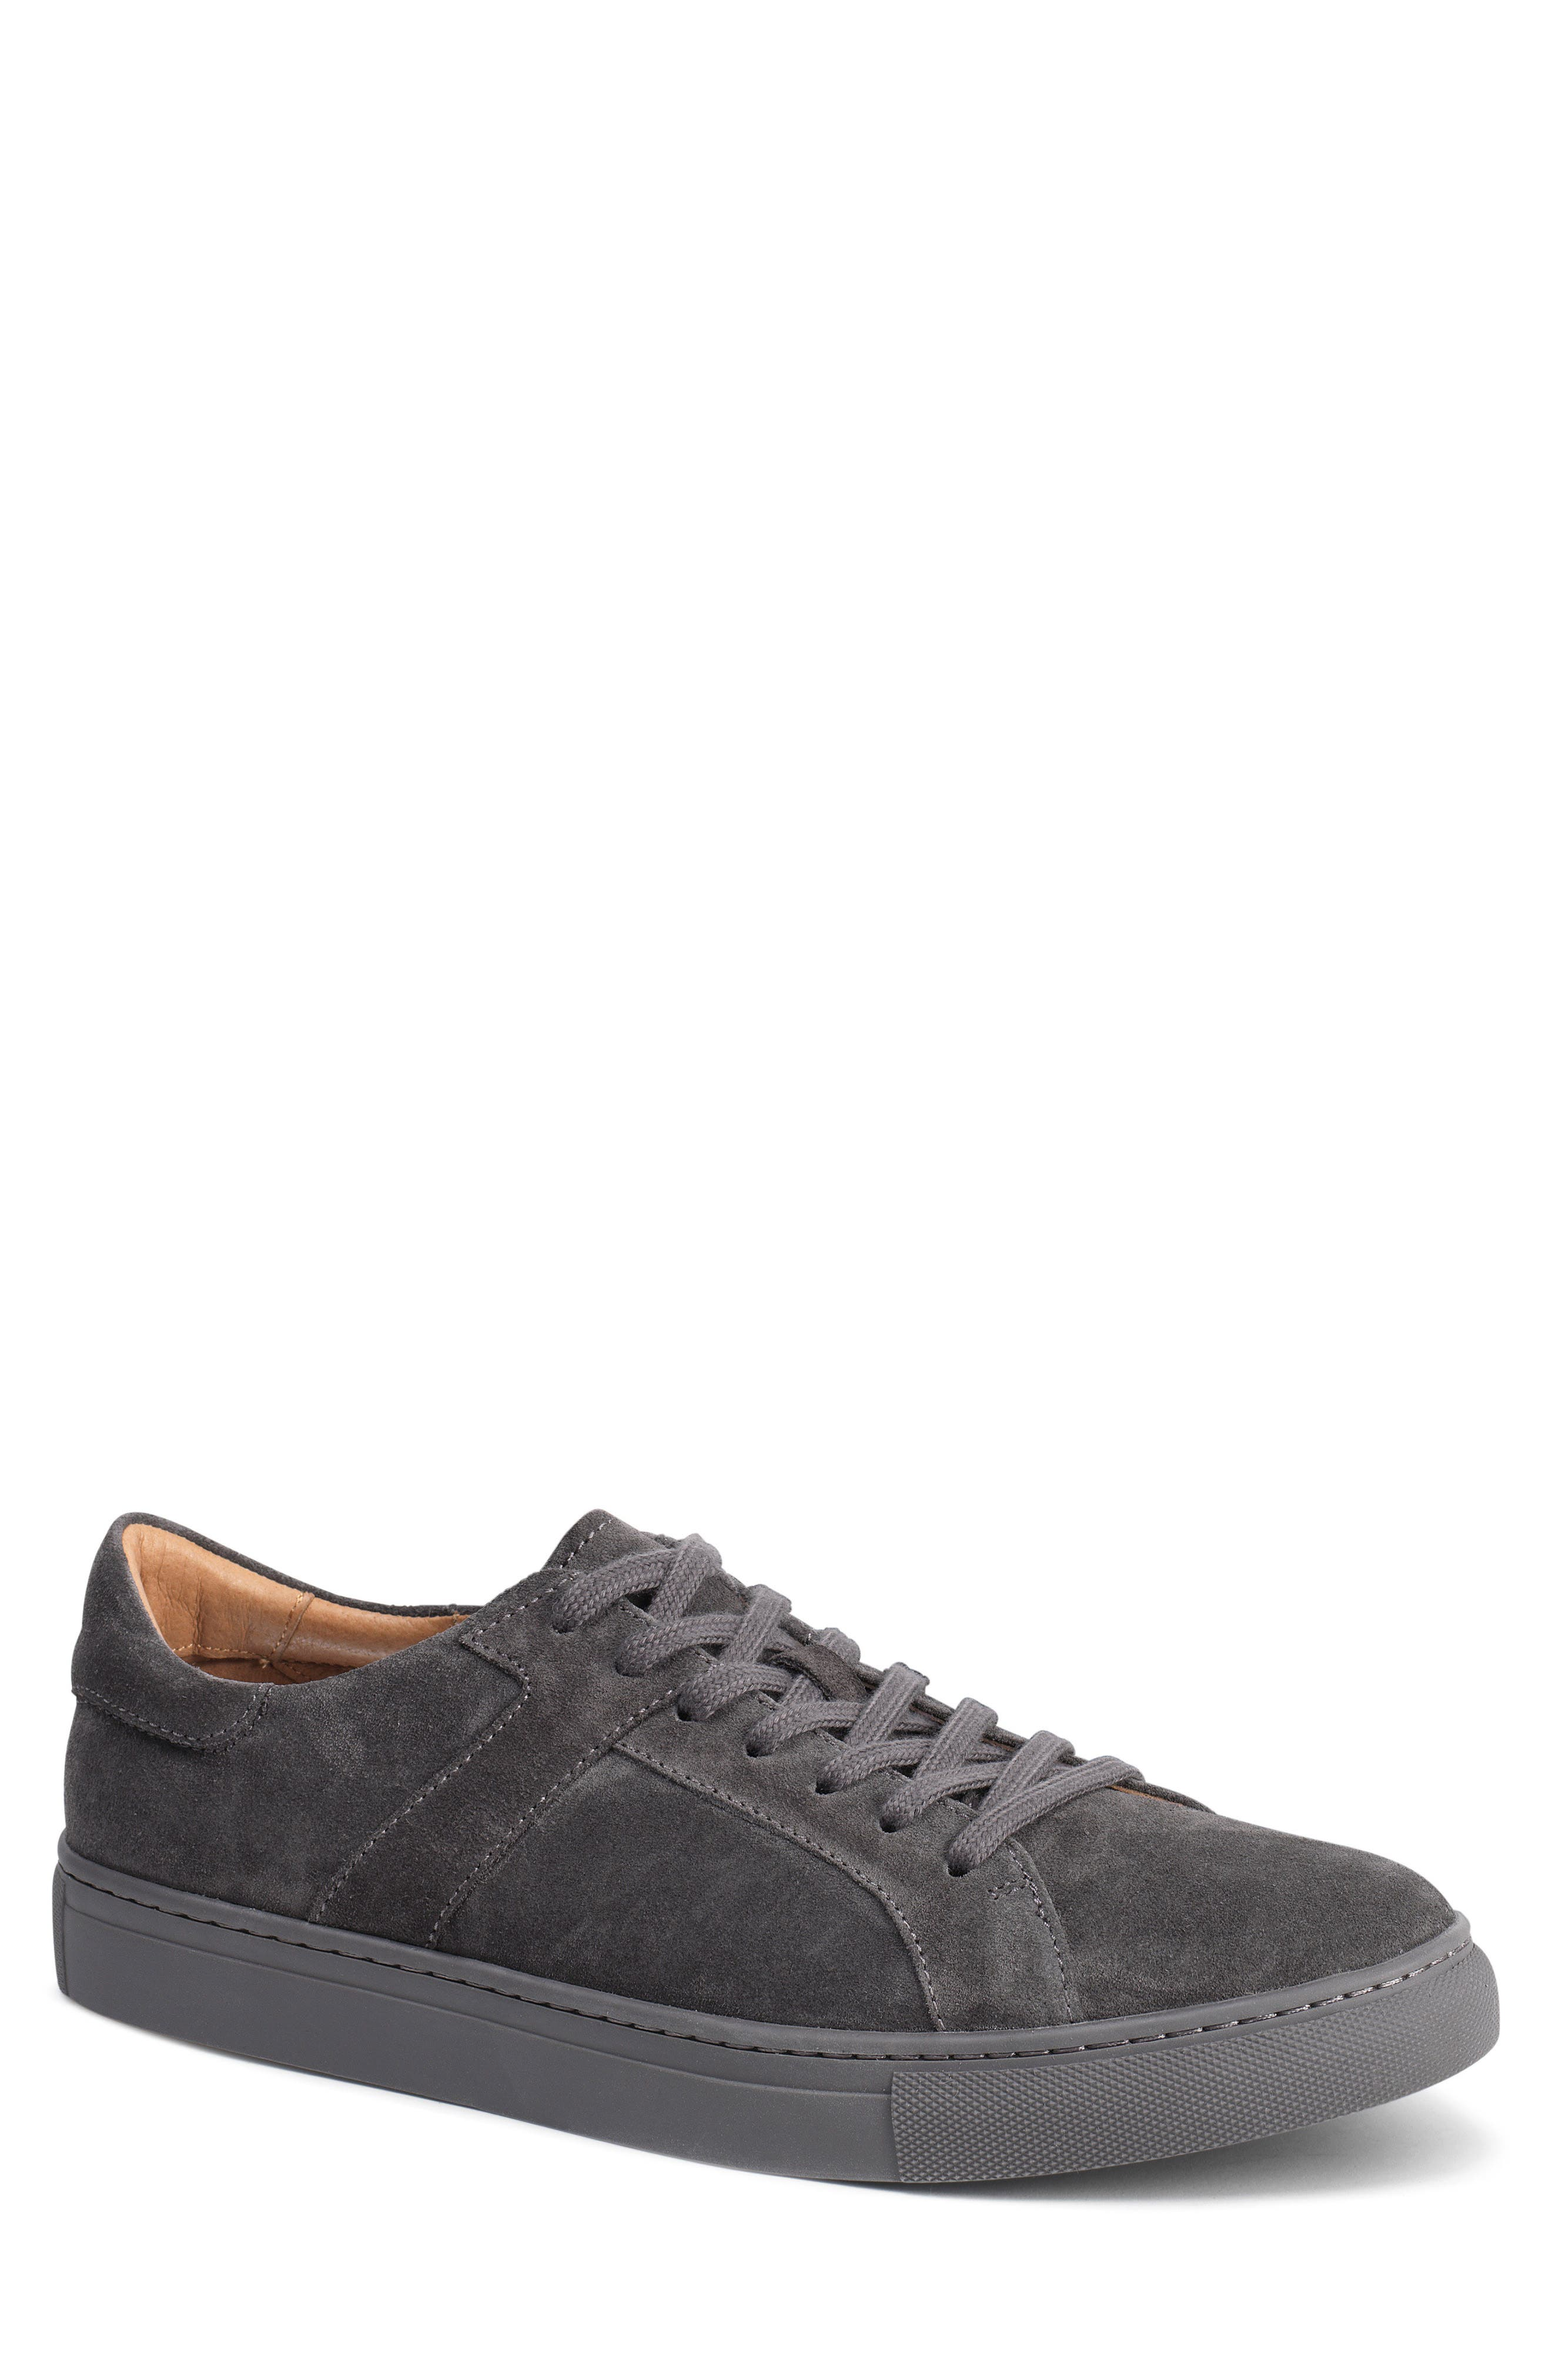 Aaron Sneaker,                             Main thumbnail 1, color,                             GRAY SUEDE